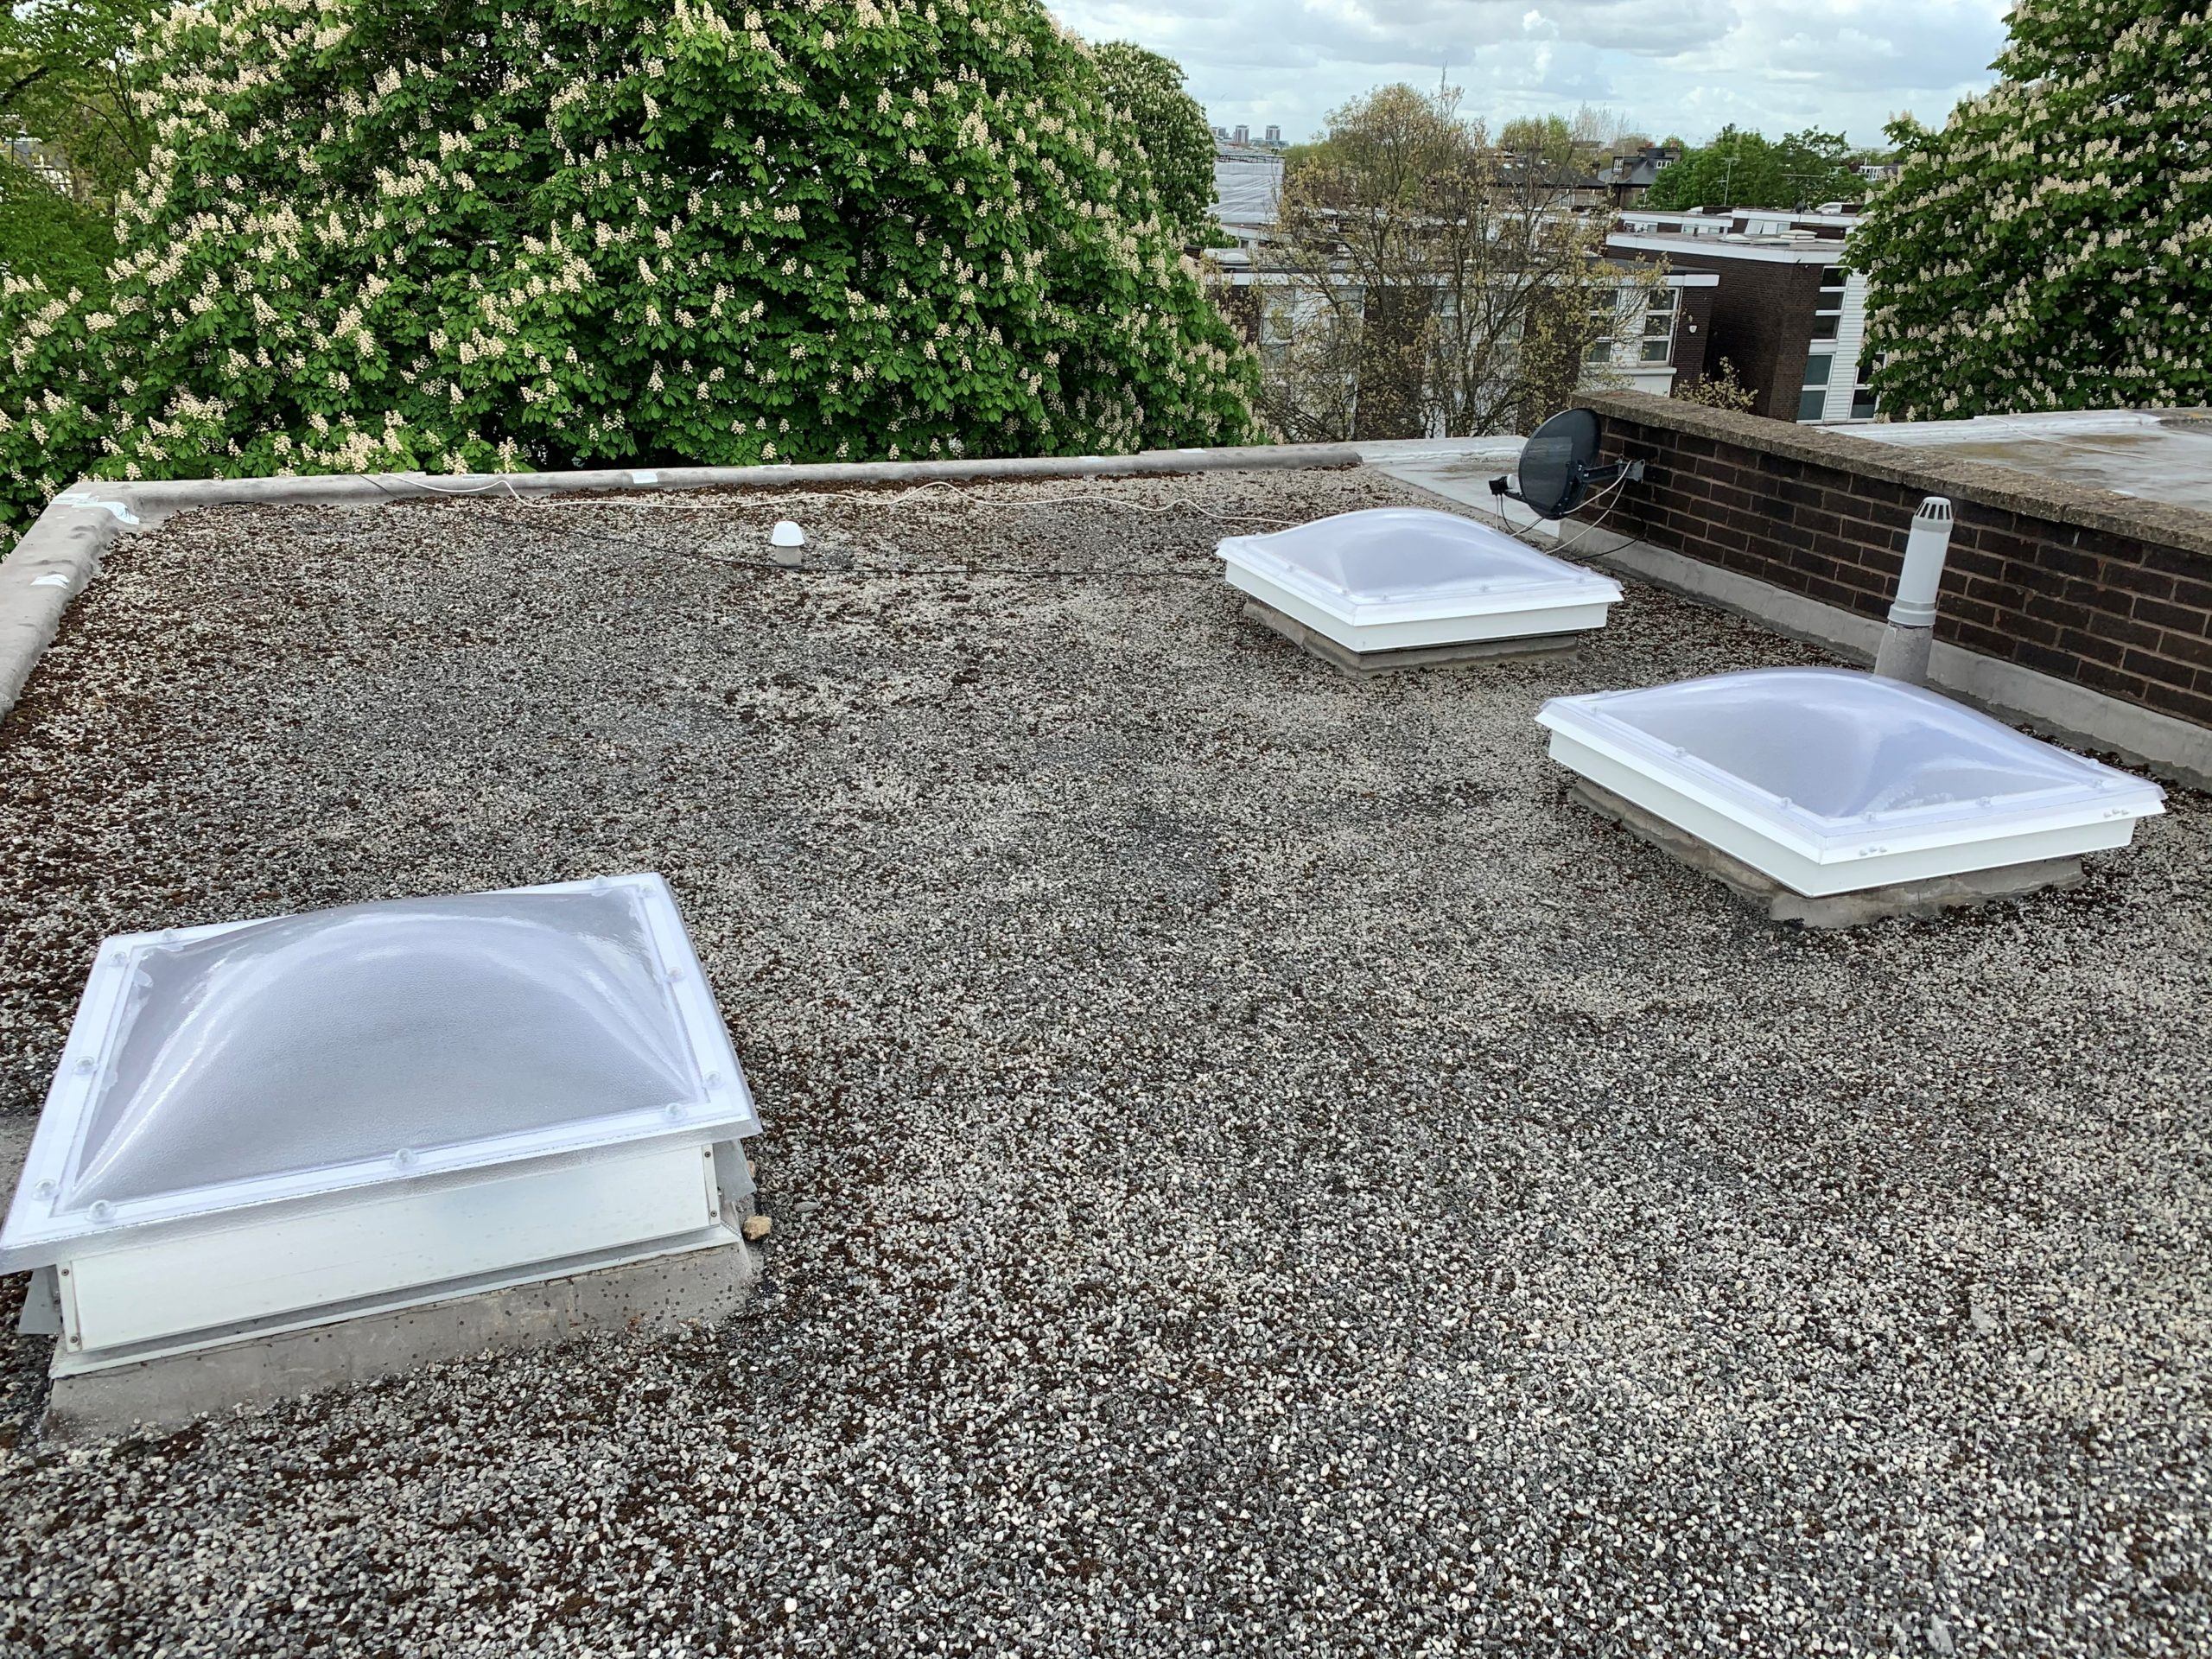 Coxdome Roof Domes From Roofglaze